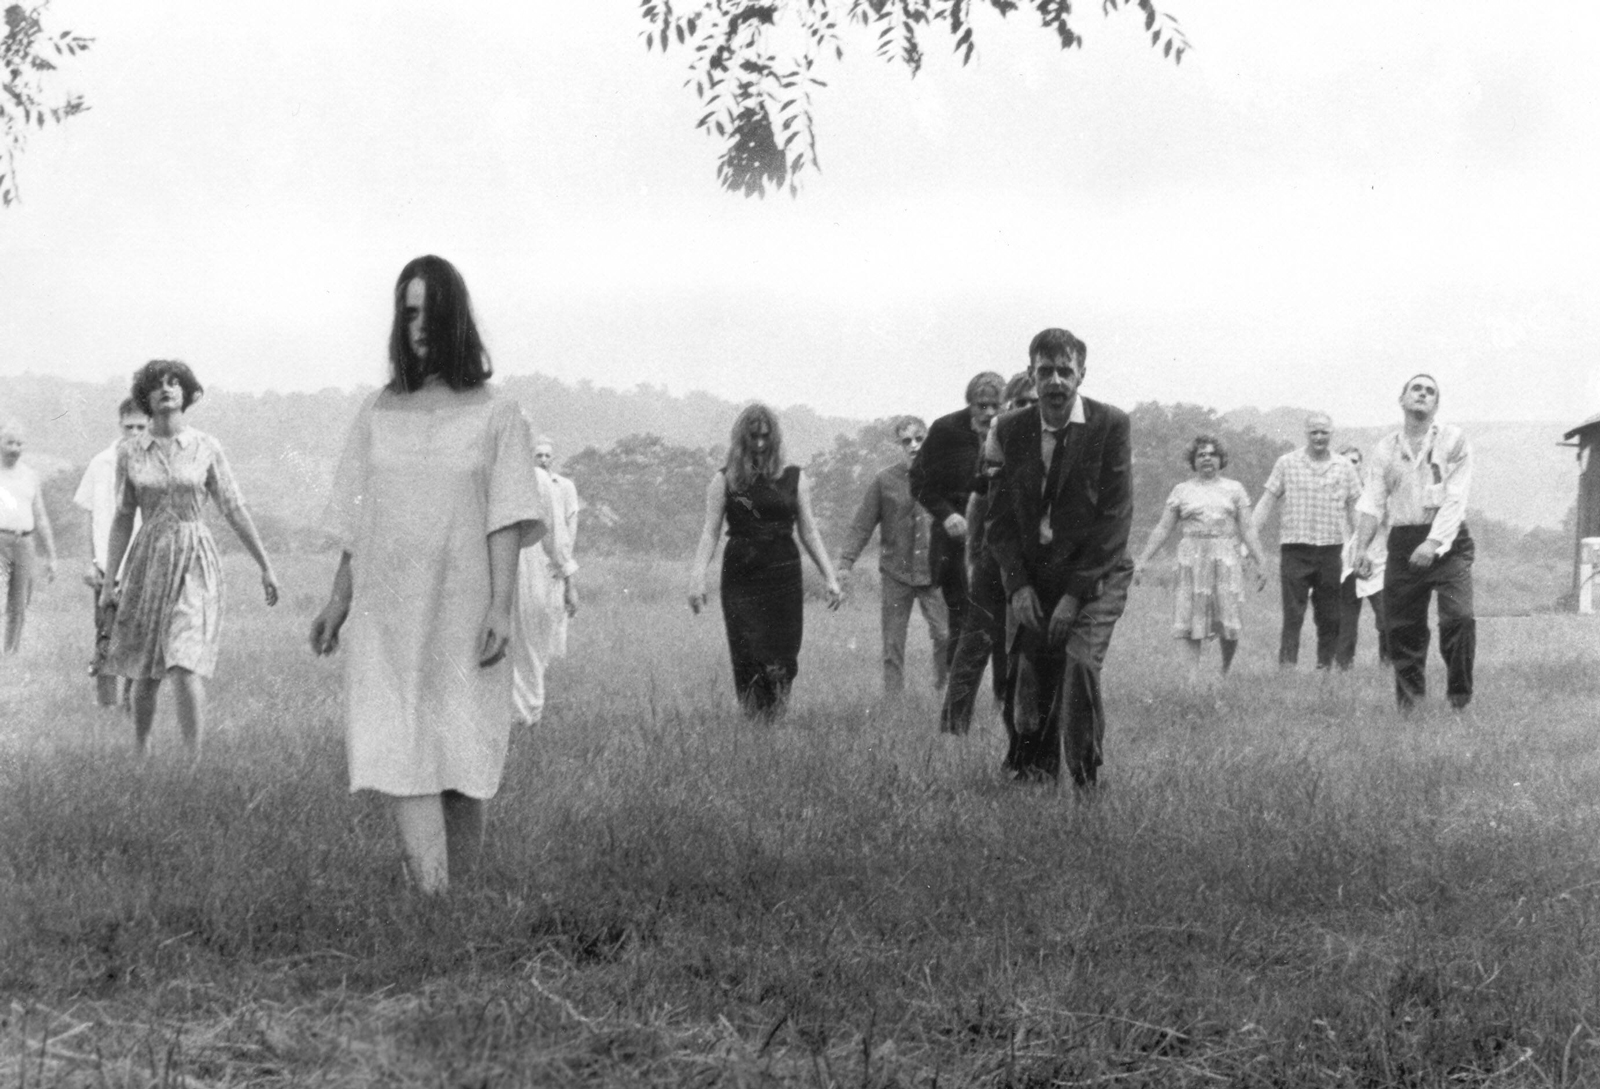 From George Romero's Night of the Living Dead, 1968